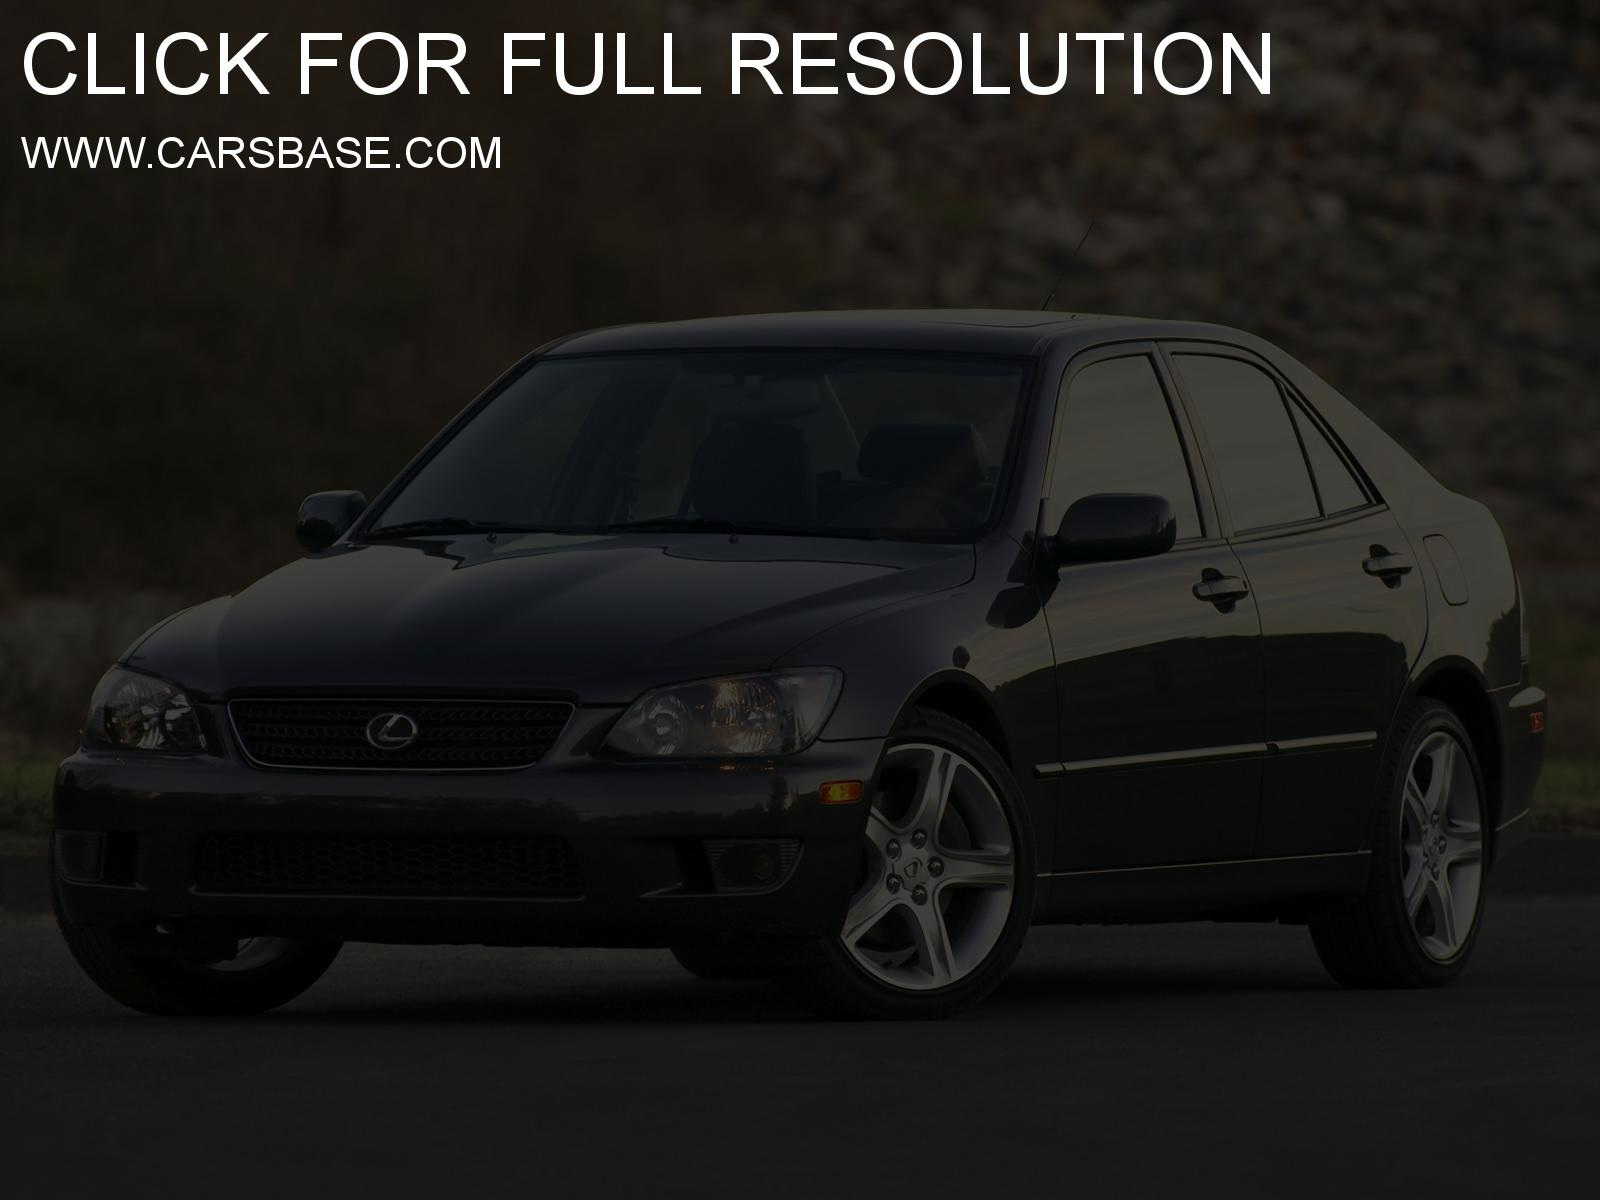 Lexus 300 photo - 2